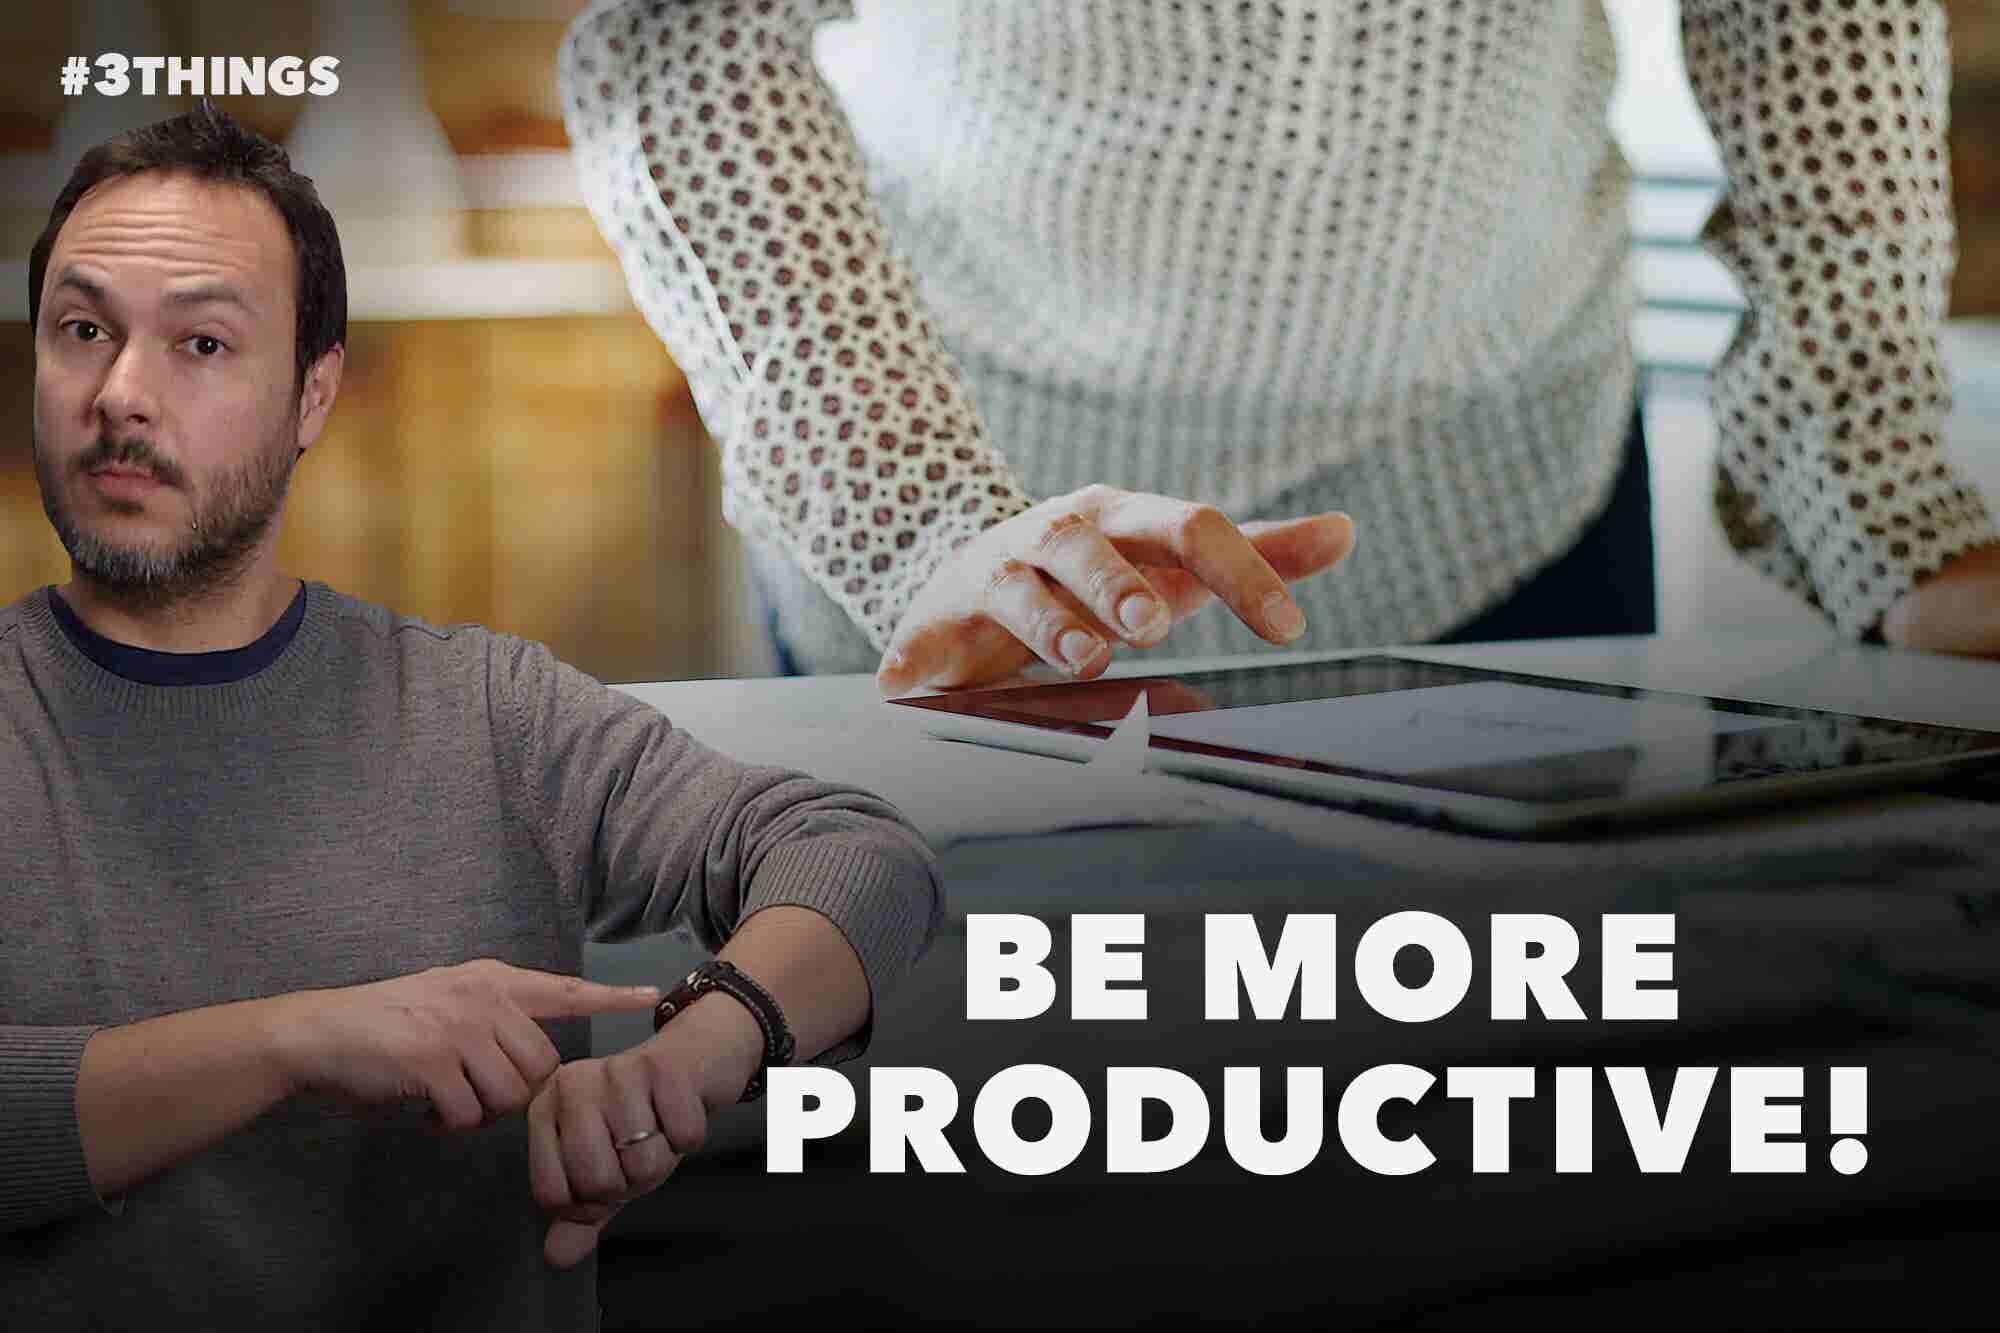 3 Productivity Tips for Organizing Your Work Life (60-Second Video)